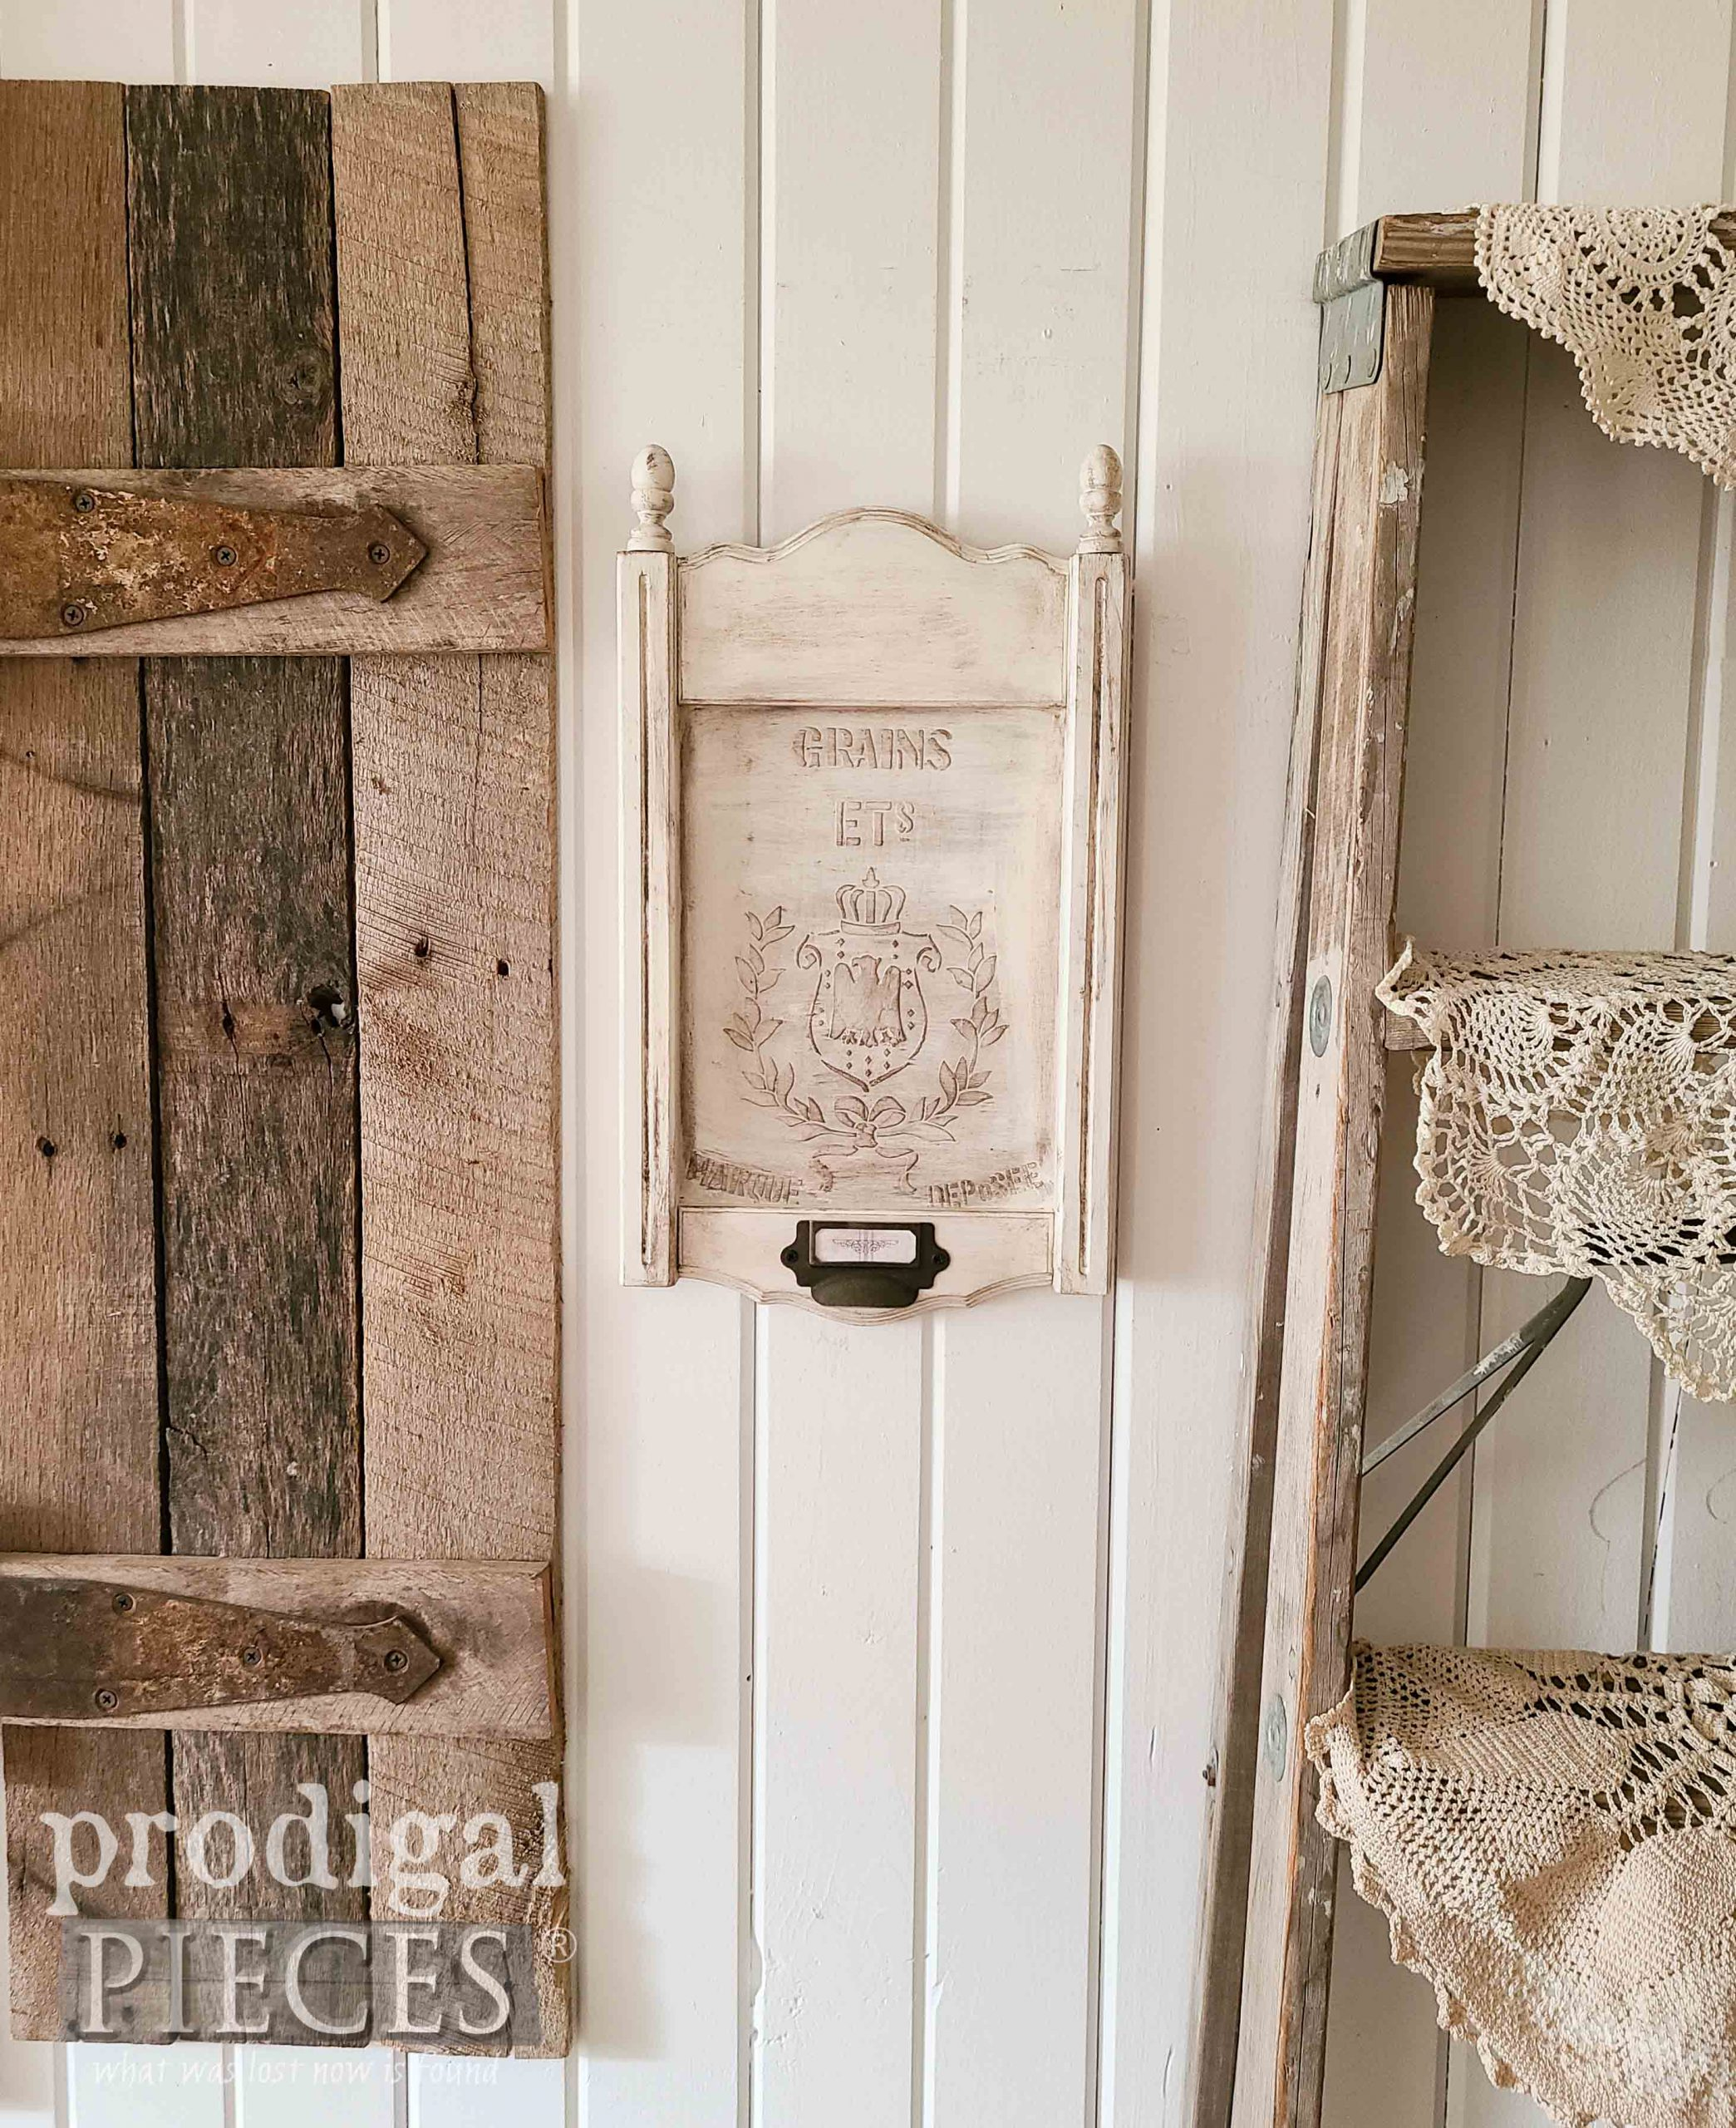 Faux Grain Sack Wall Art with DIY Embossing by Larissa of Prodigal Pieces | prodigalpieces.com #prodigalpieces #diy #crafts #home #farmhouse #homedecor